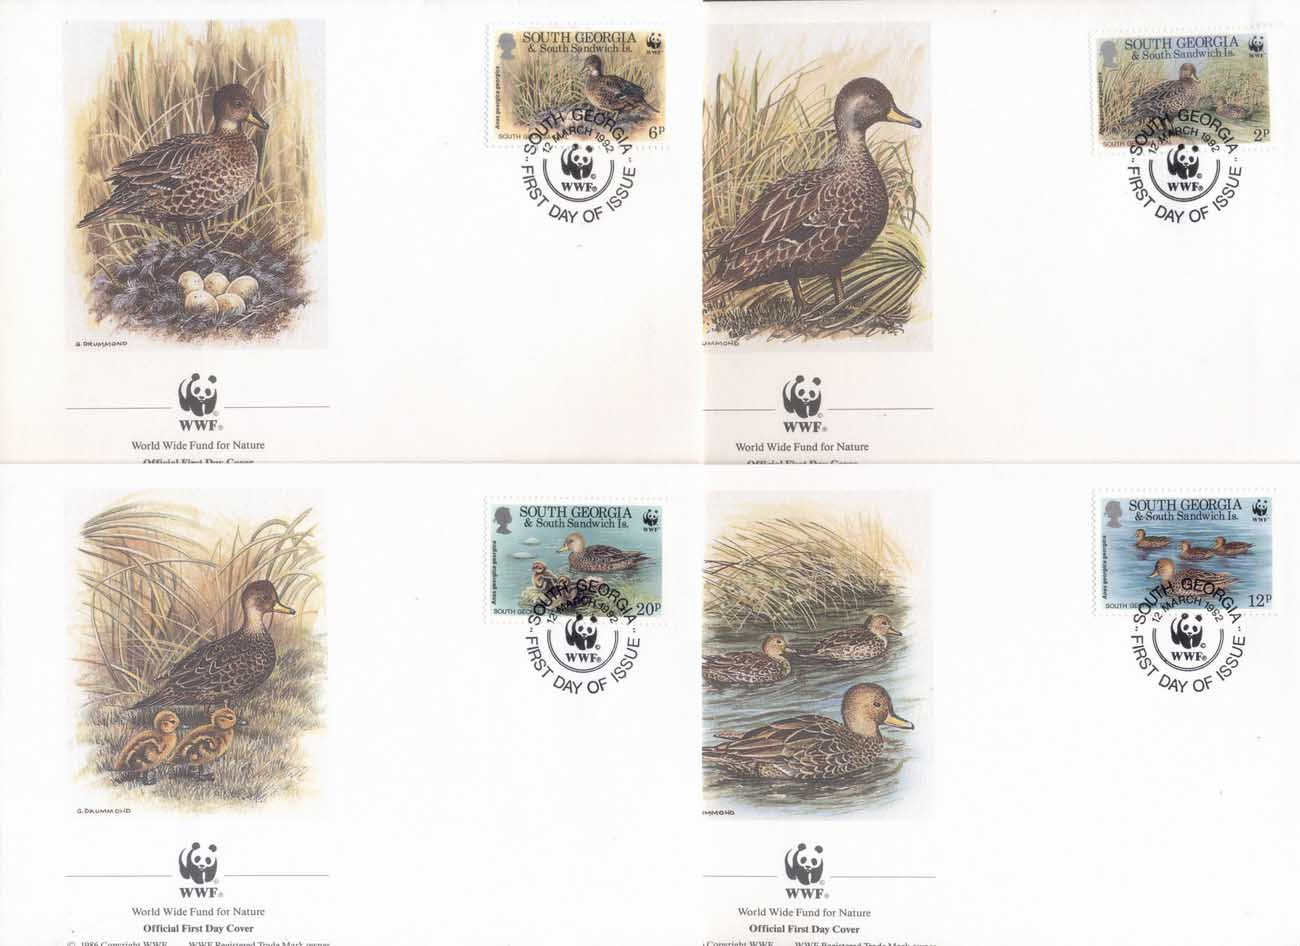 South Georgia 1992 WWF South Georgia Teal, bird FDC